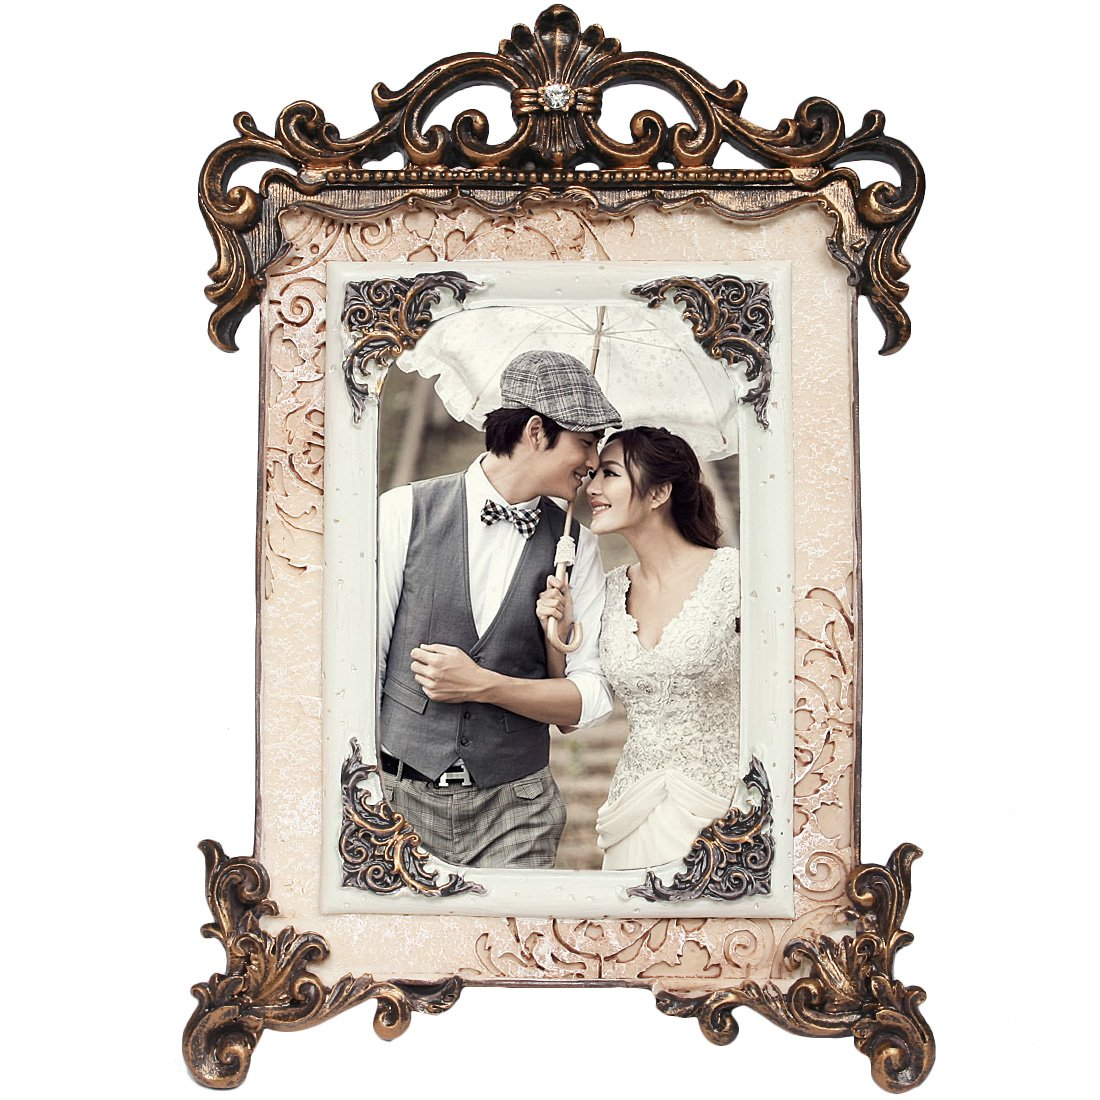 kilofly Vintage Table Top Decor Wedding Photo Picture Frame, 6x8 inch